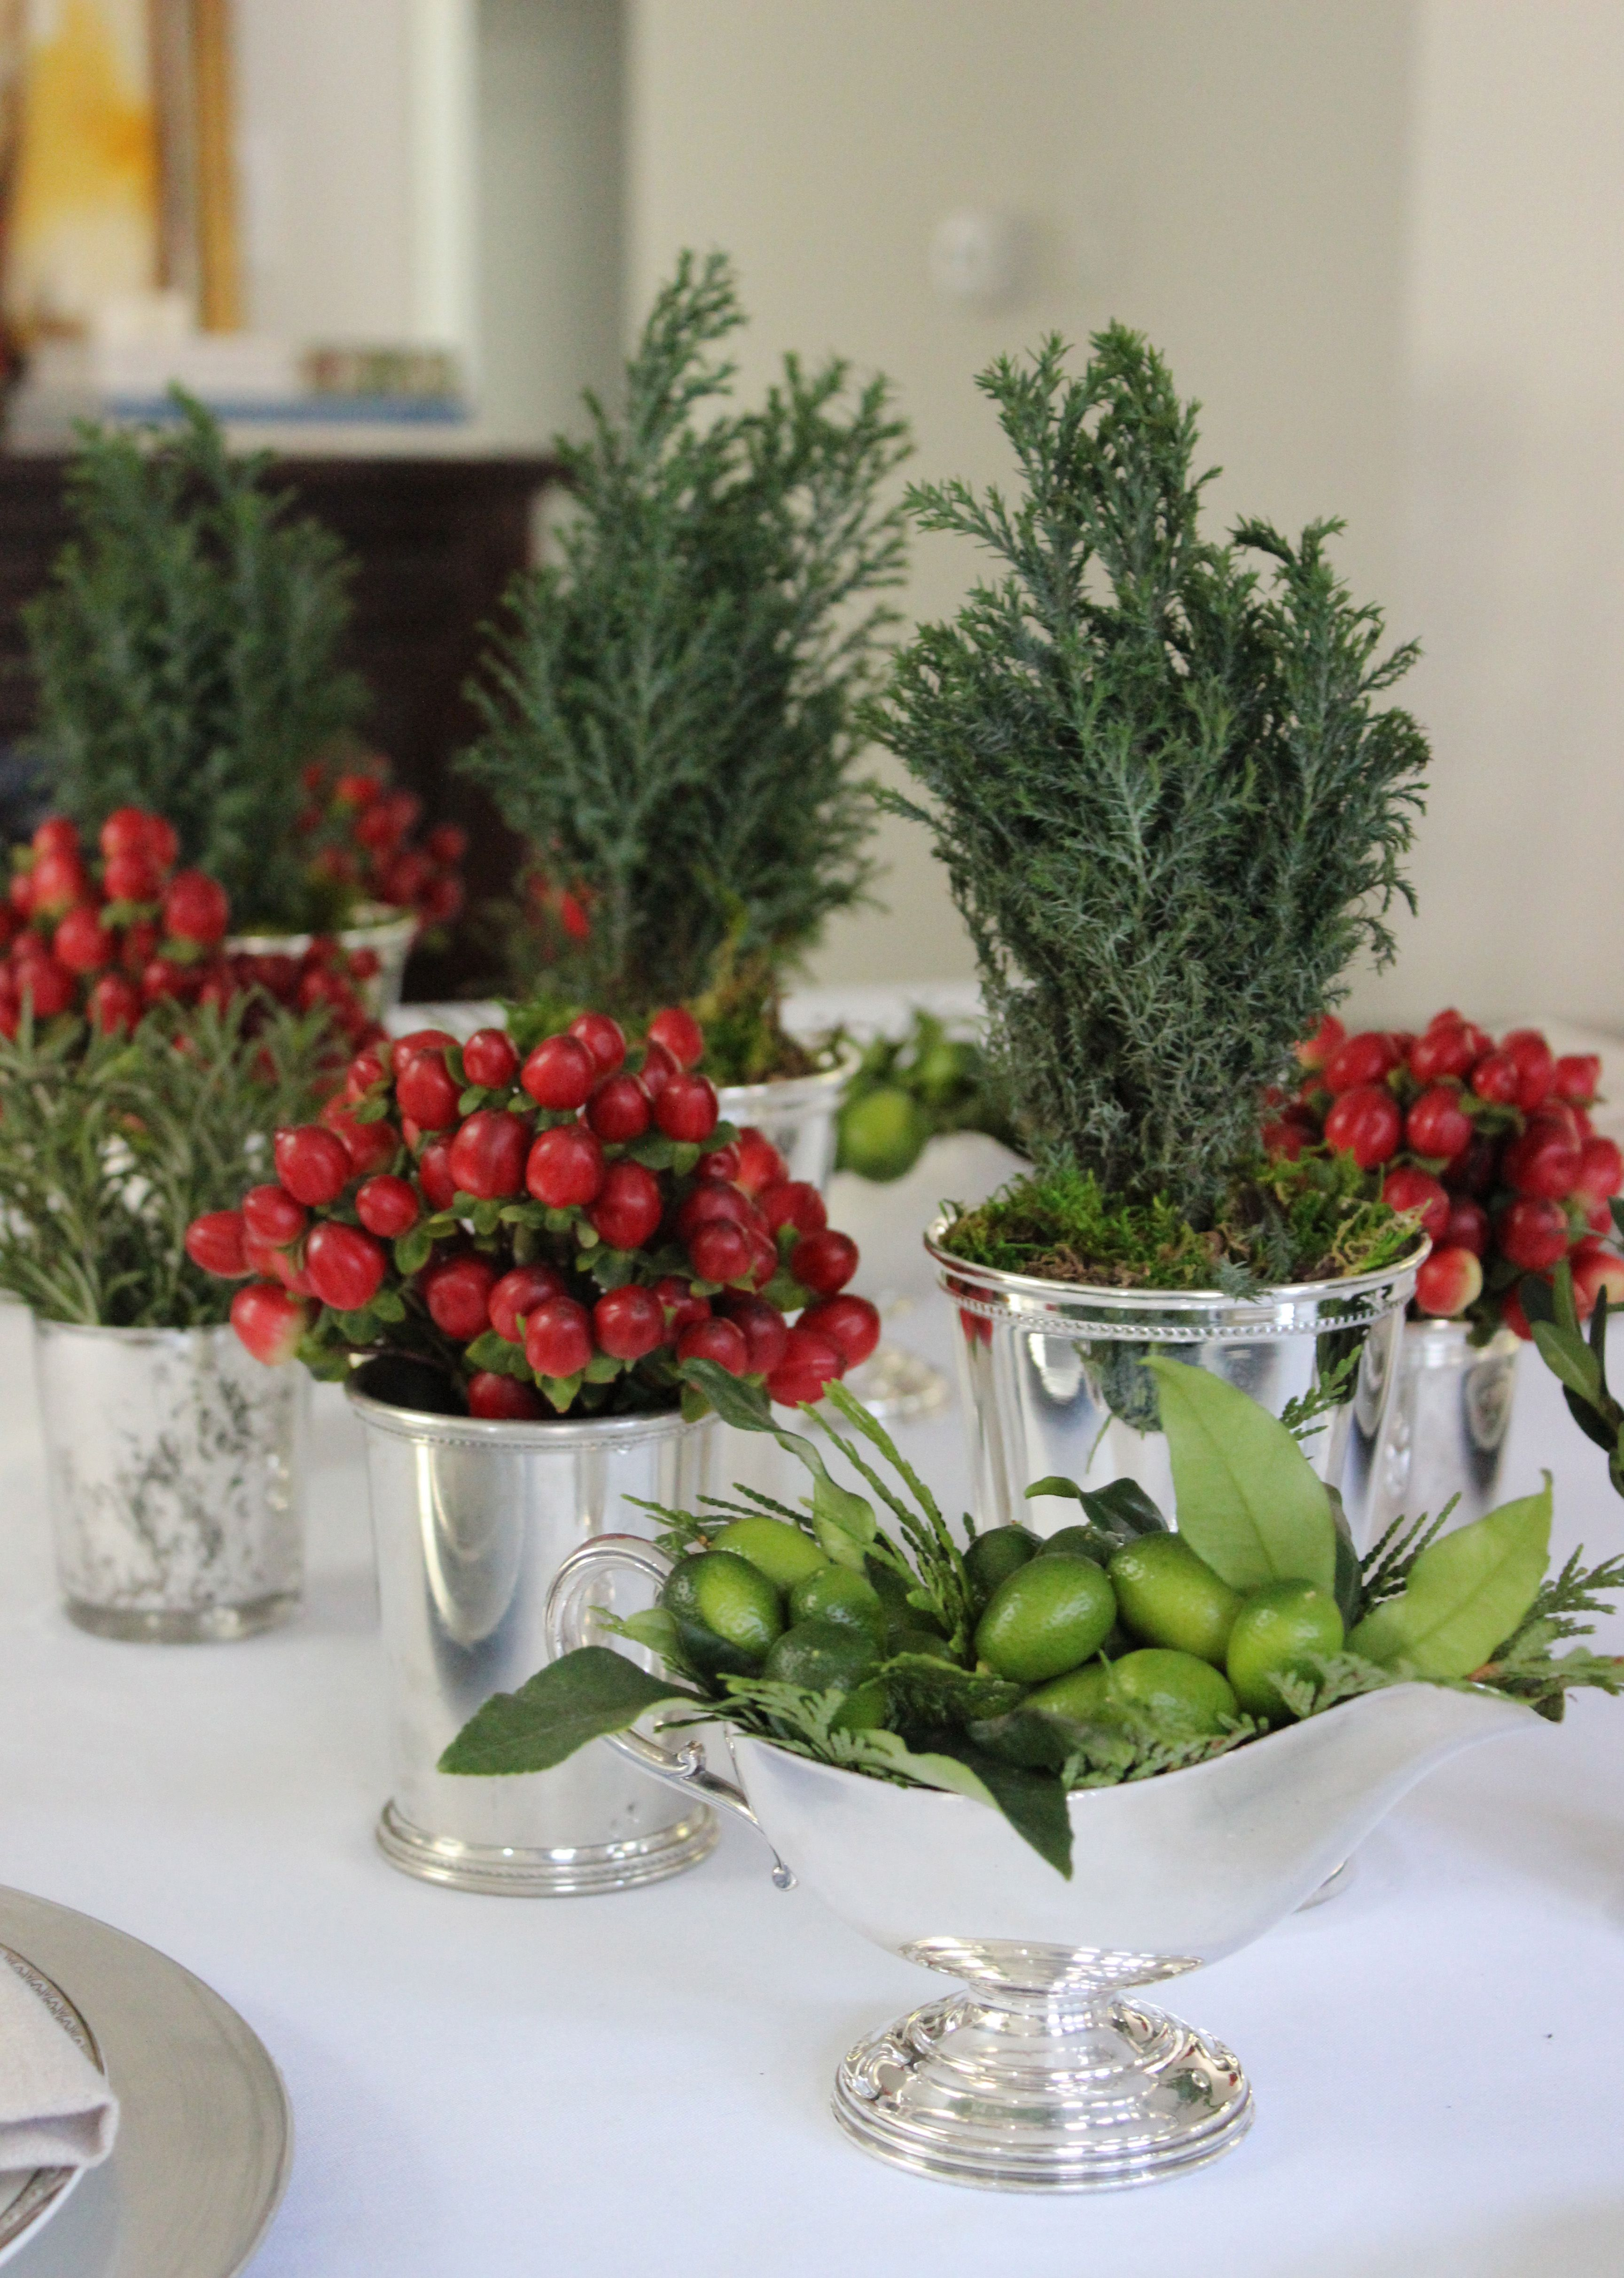 Simple and festive ideas for your table at christmas silver mint simple and festive ideas for your table at christmas silver mint julep cups hypericum reviewsmspy